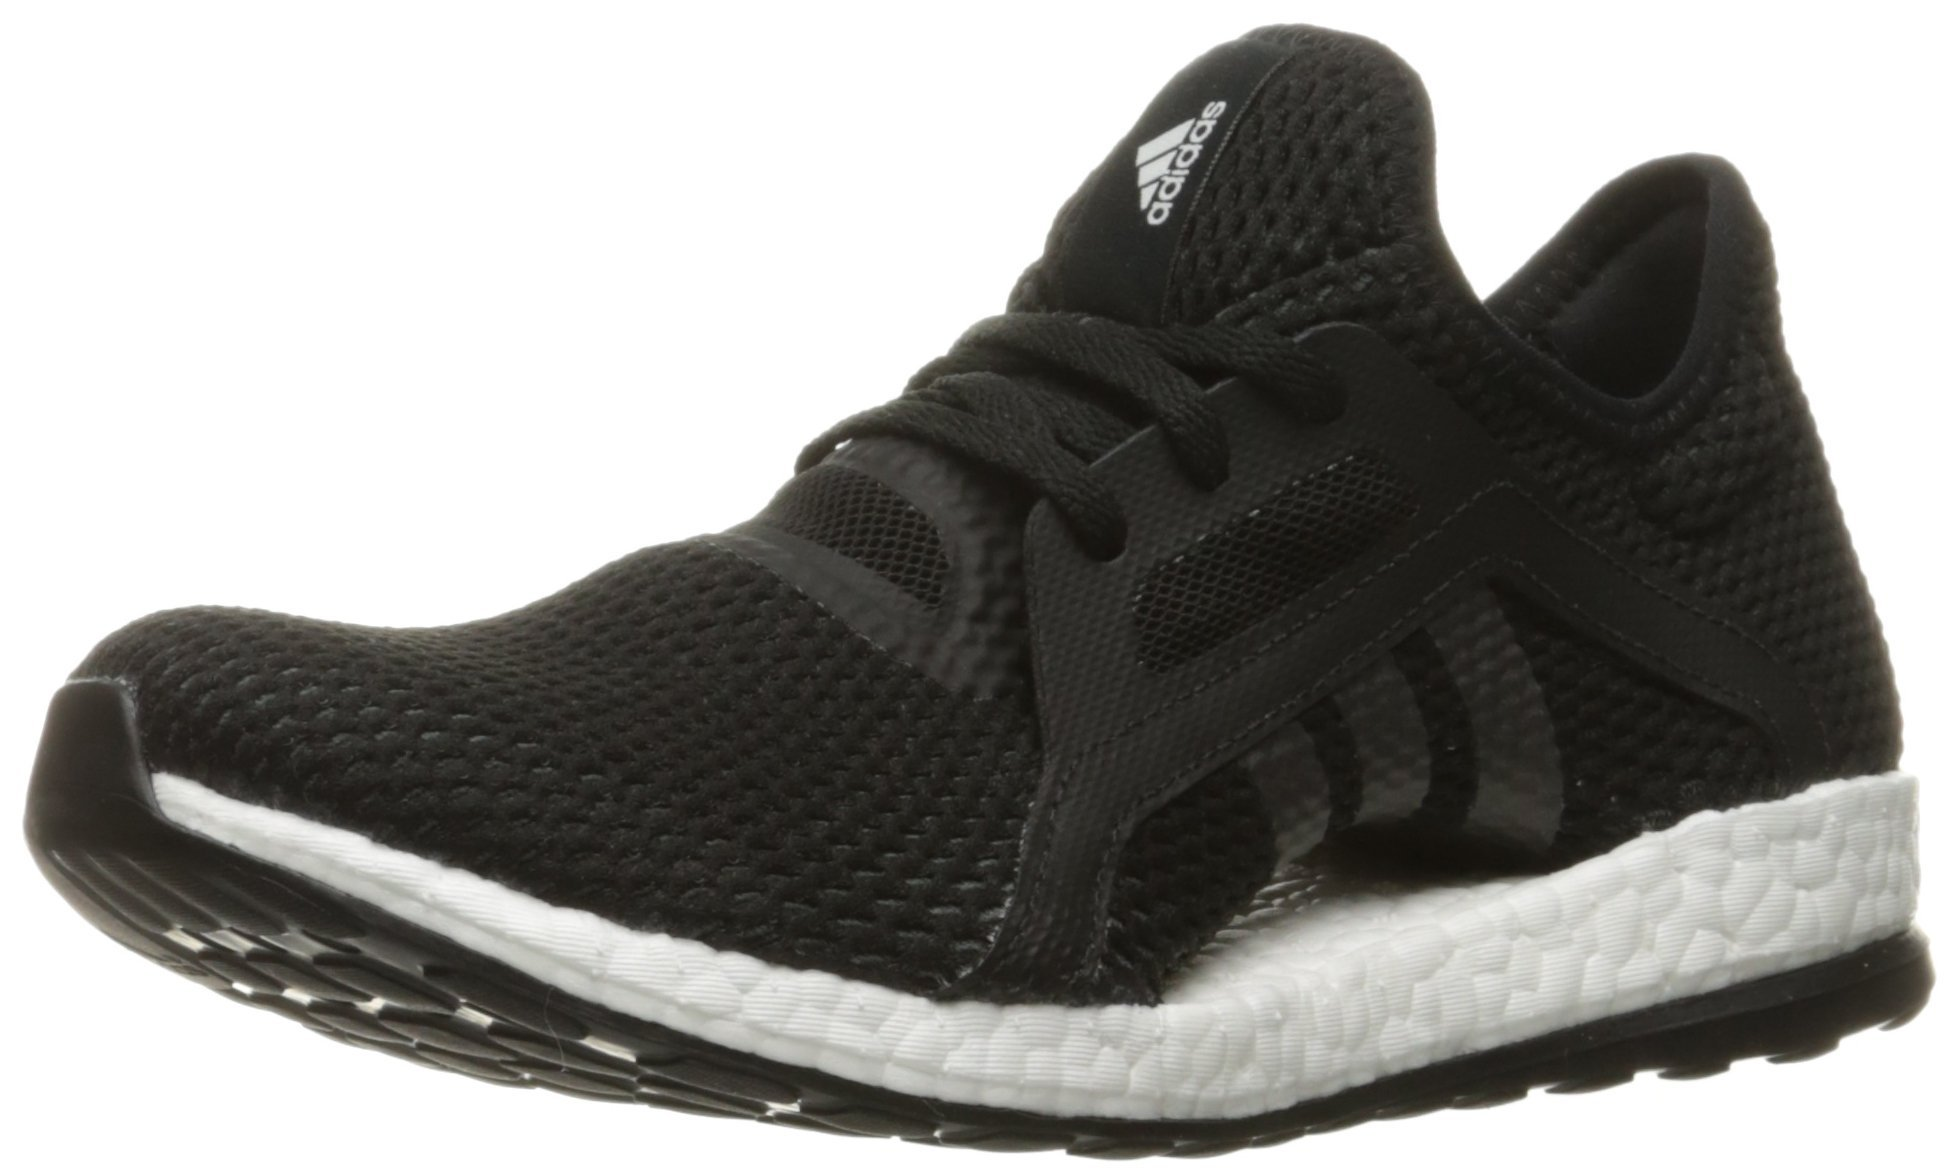 adidas Performance Women's Pureboost X-w Running Shoe, Black/Black/Solid Grey, 8 M US